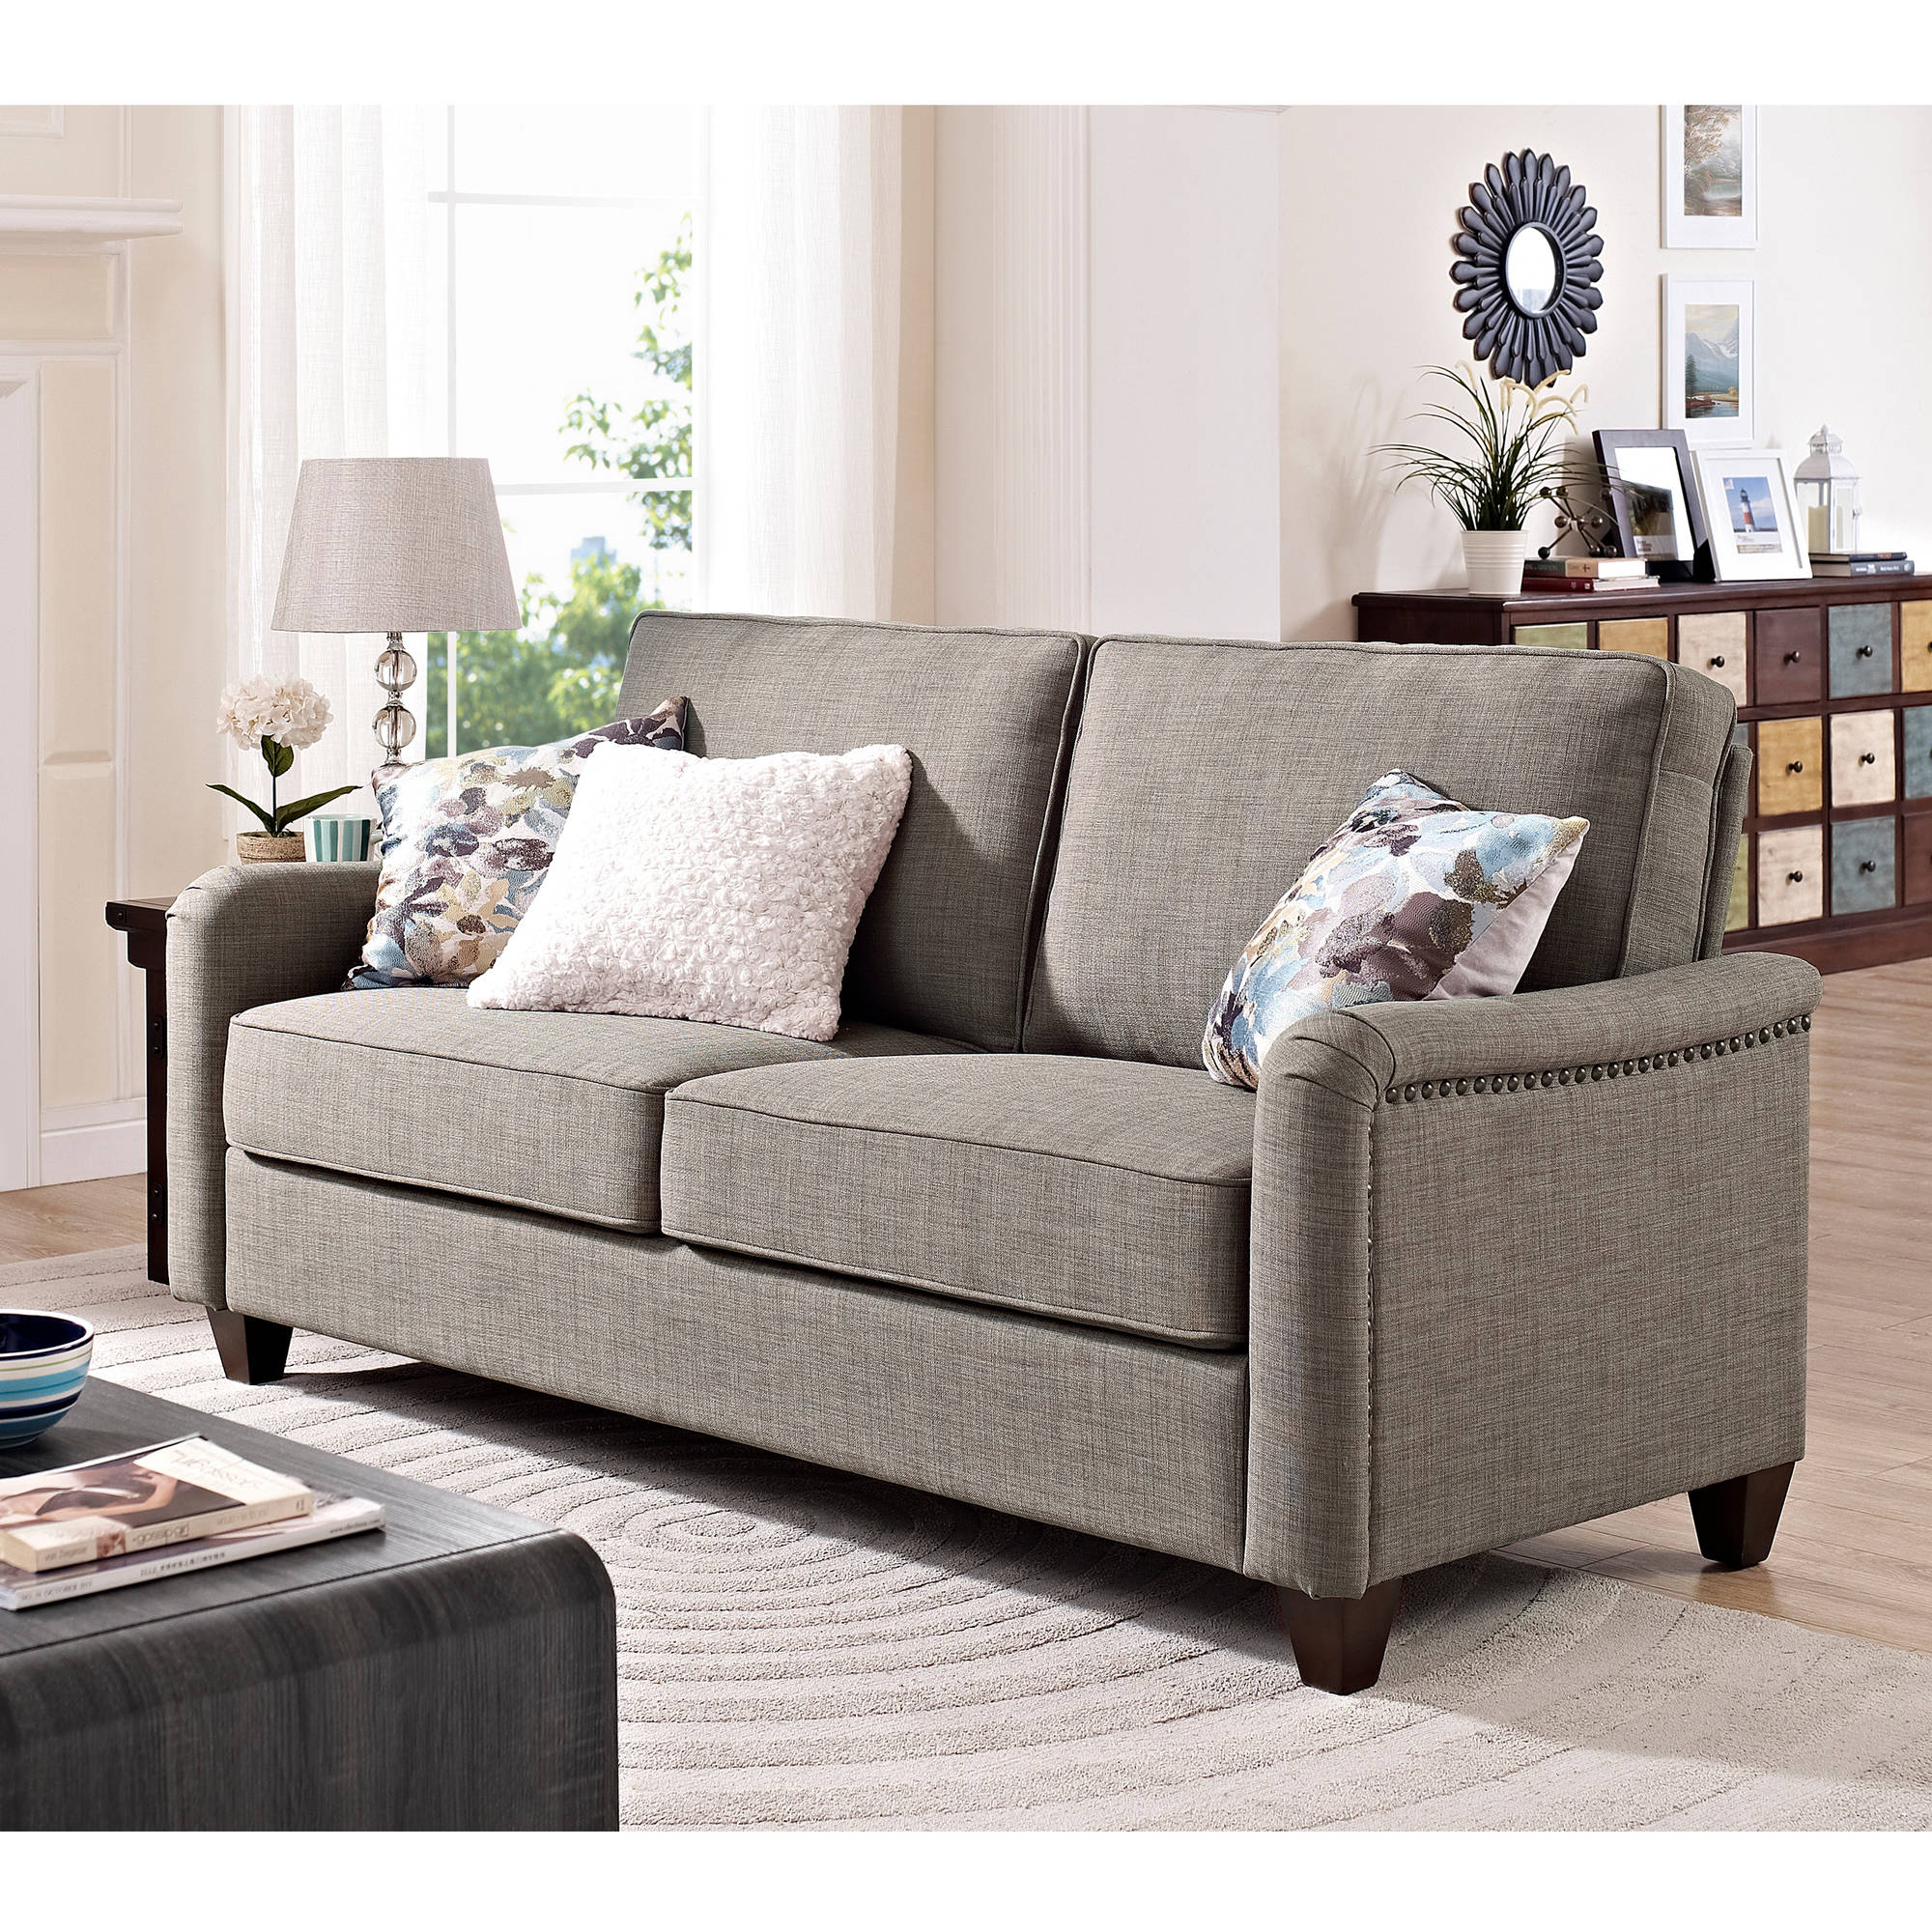 Better Homes and Gardens Grayson Sofa with Nailheads, Grey ...